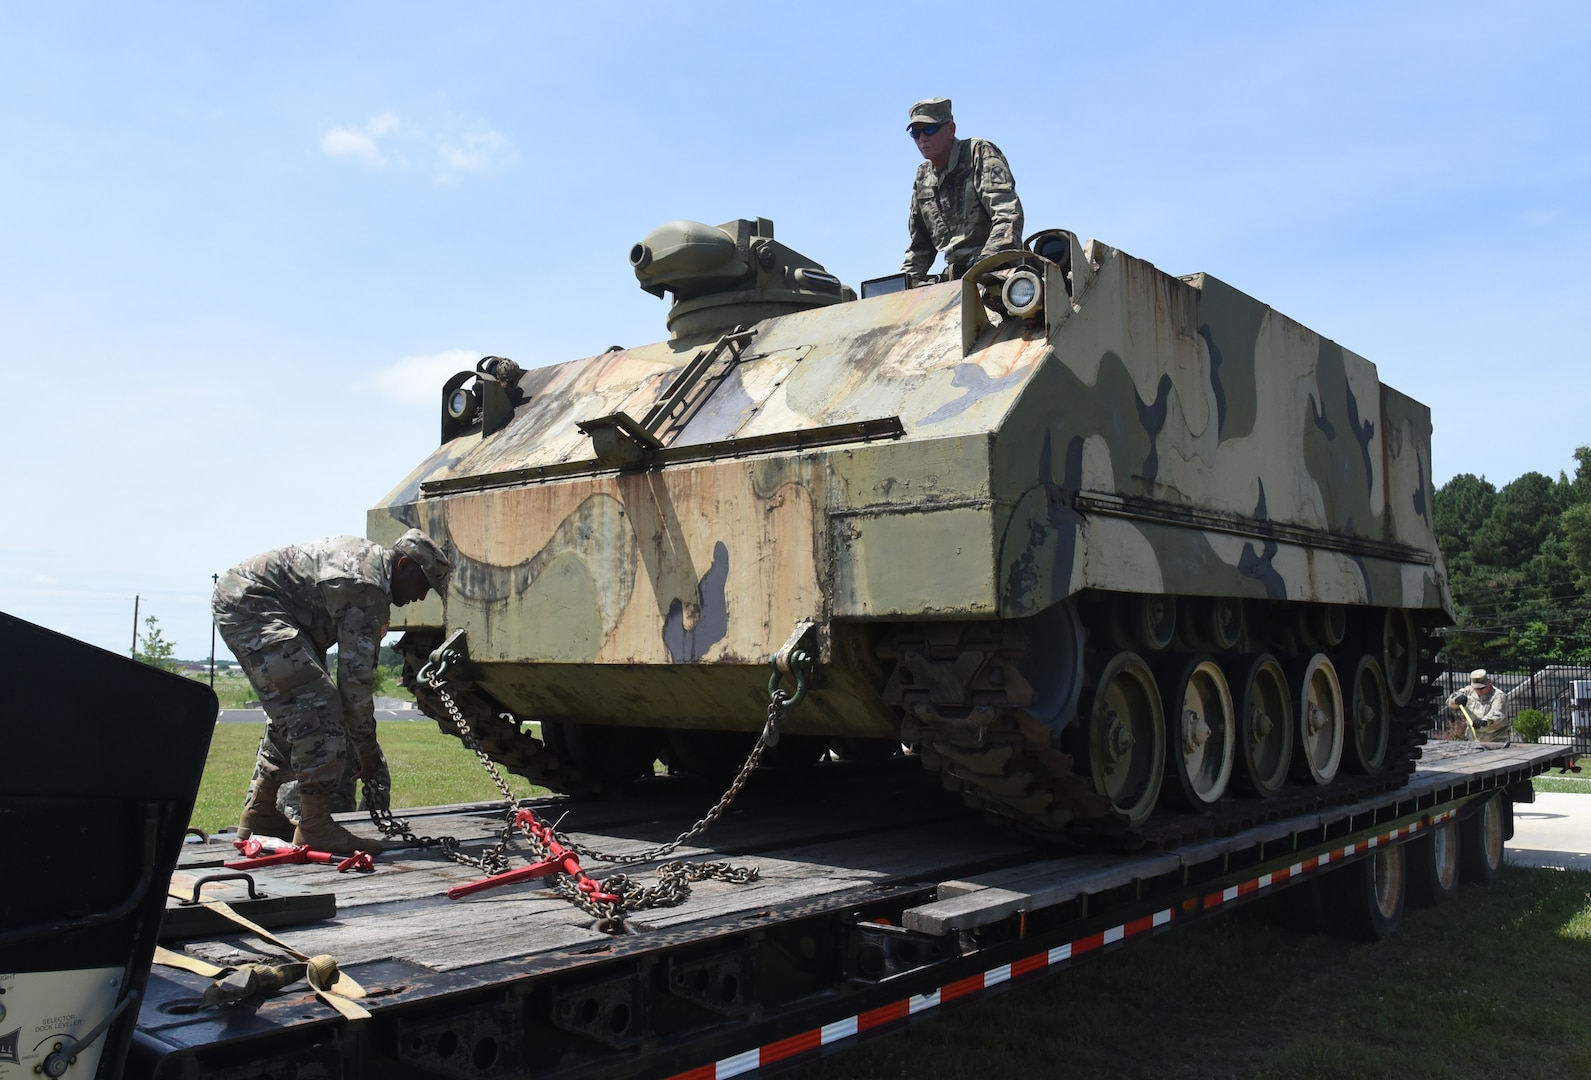 Virginia National Guard Soldiers assigned to the G4 Maintenance Assistance and Instruction Team offload an M84 self-propelled 4.2 mortar carrier June 25, 2021, at the VNG's Sergeant Bob Slaughter Headquarters at Defense Supply Center Richmond, Virginia.